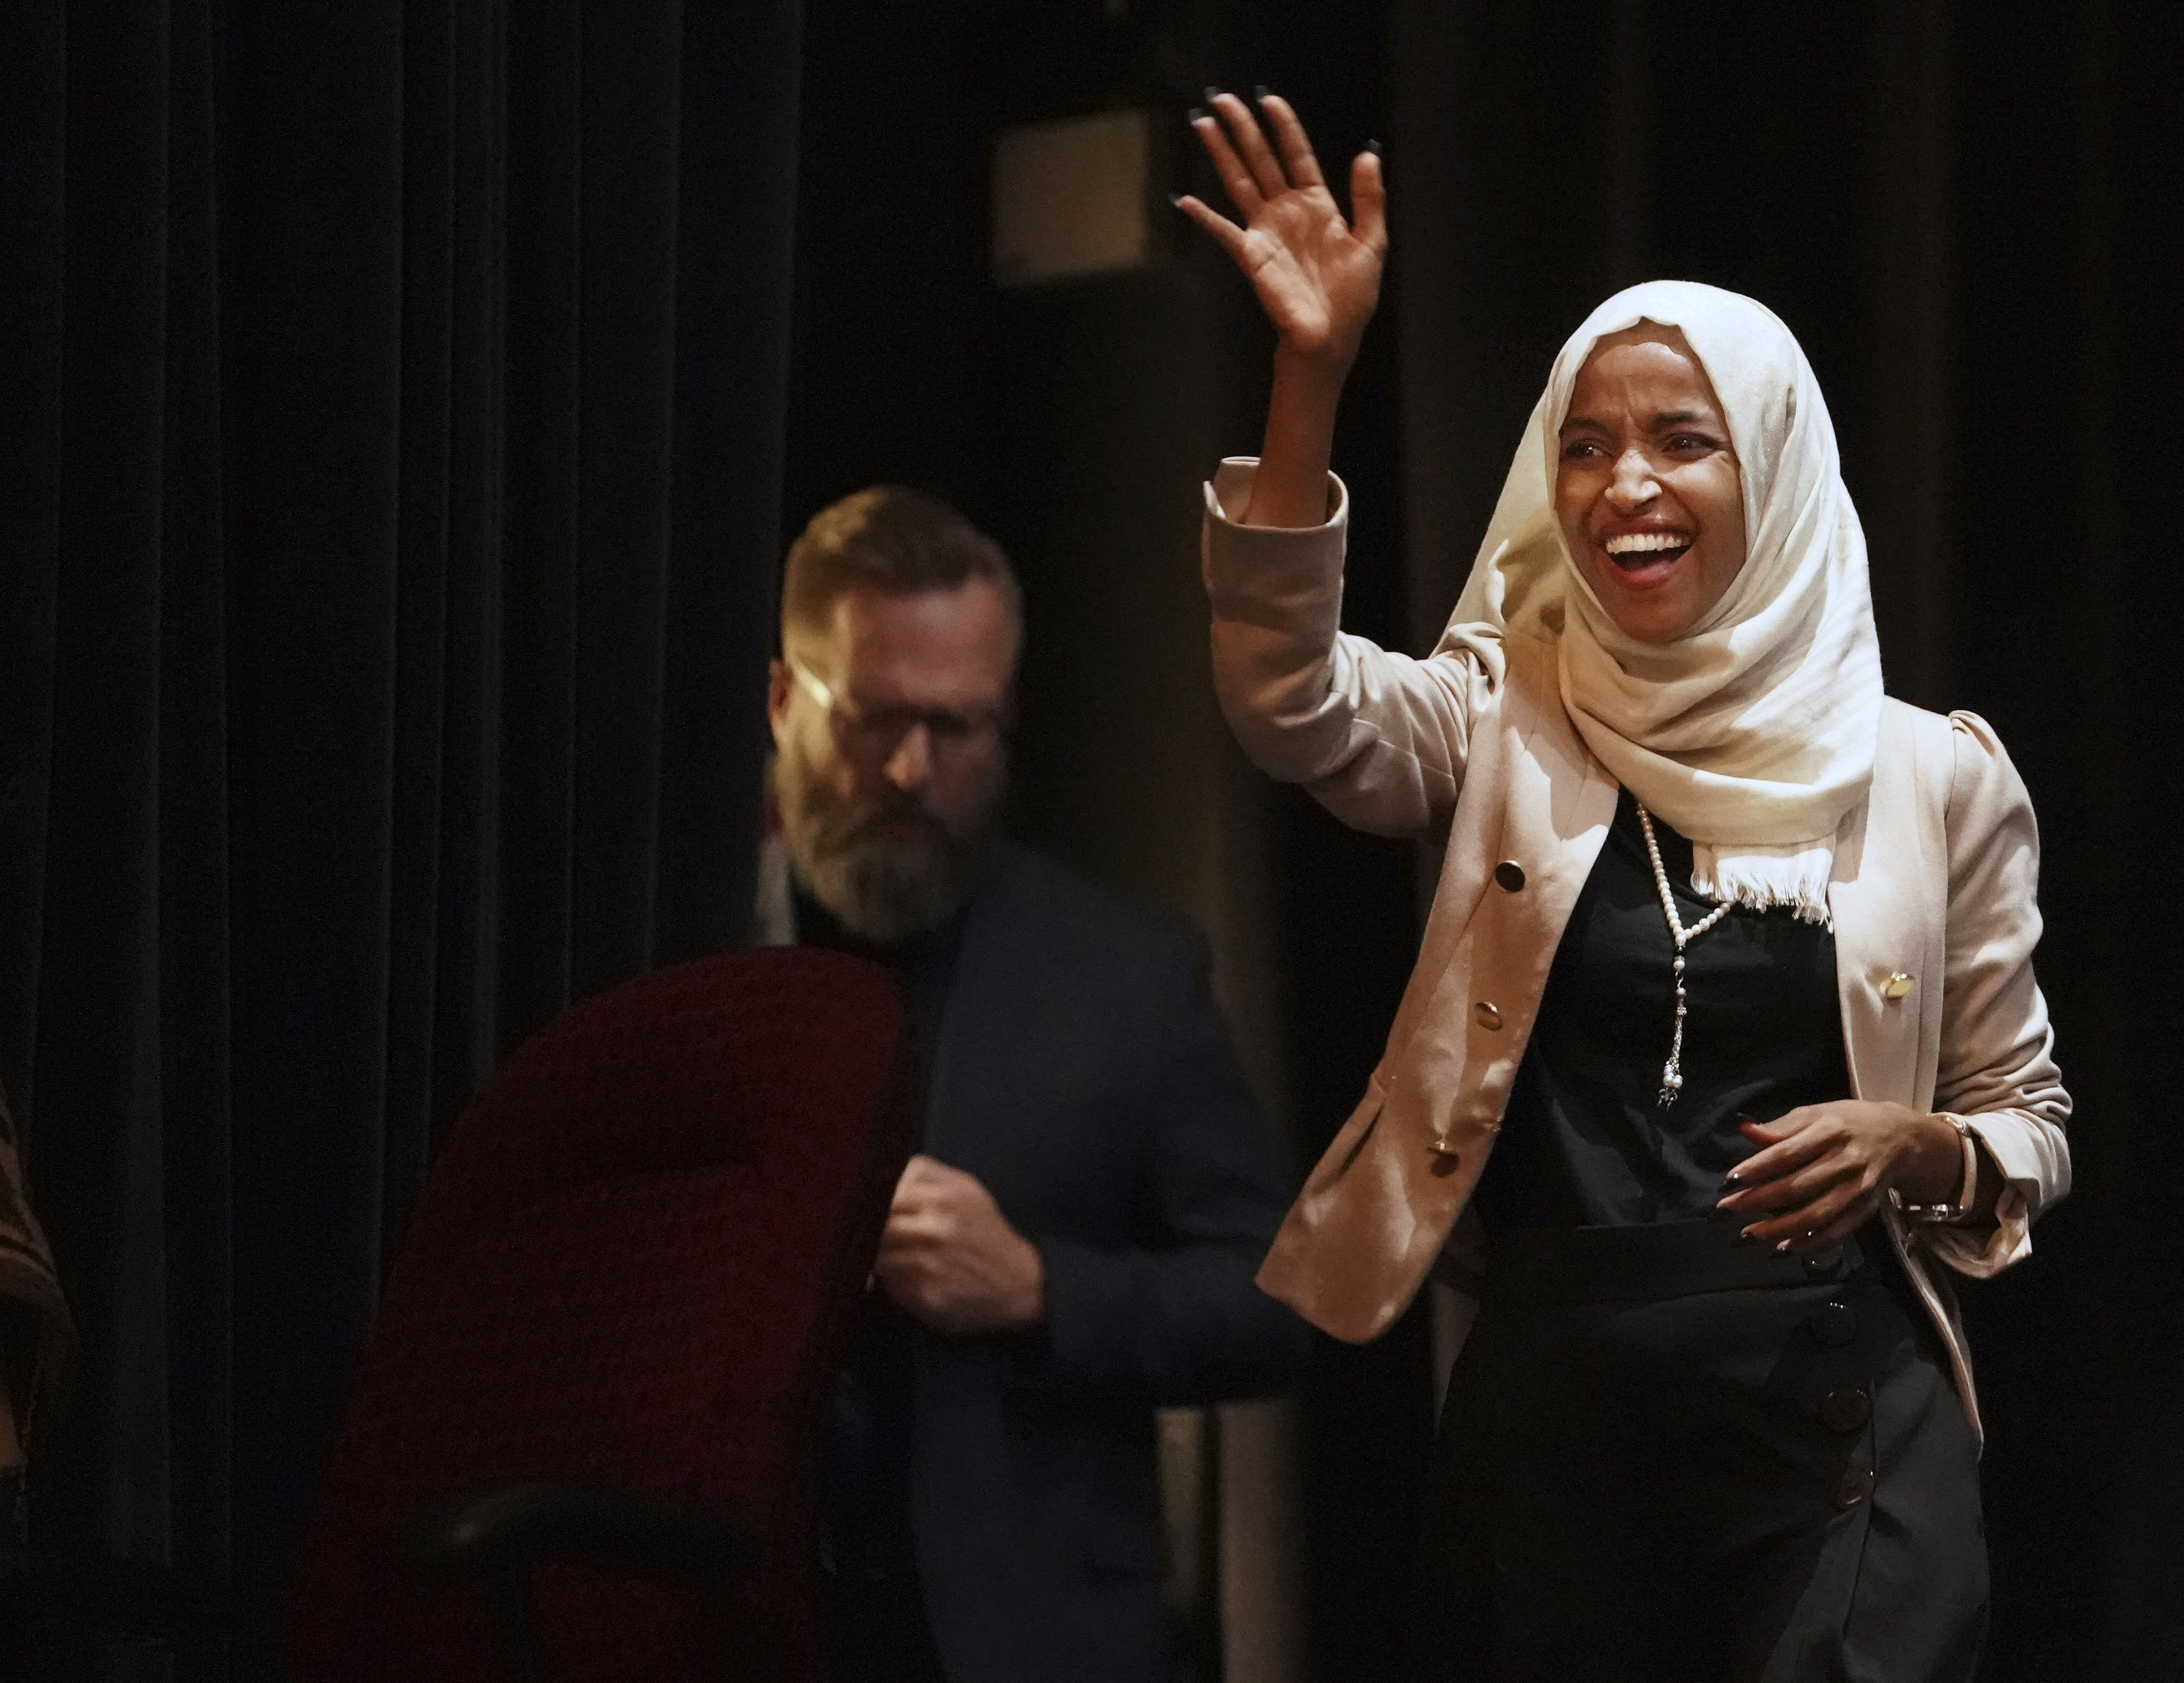 Lawmaker, conservative group seek ethics probes of Rep. Omar